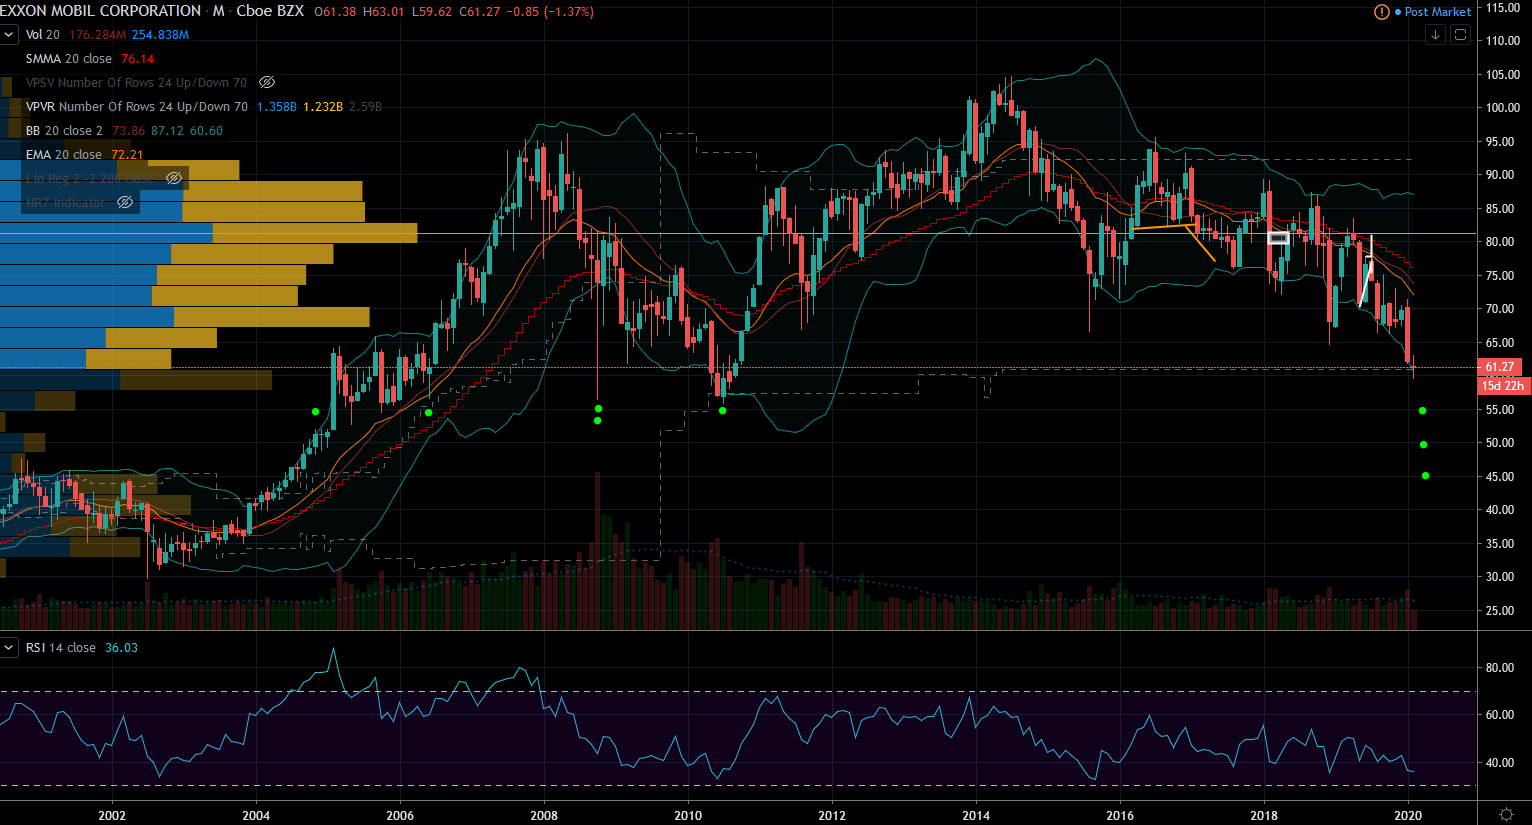 Exxon Monthly Stock Chart